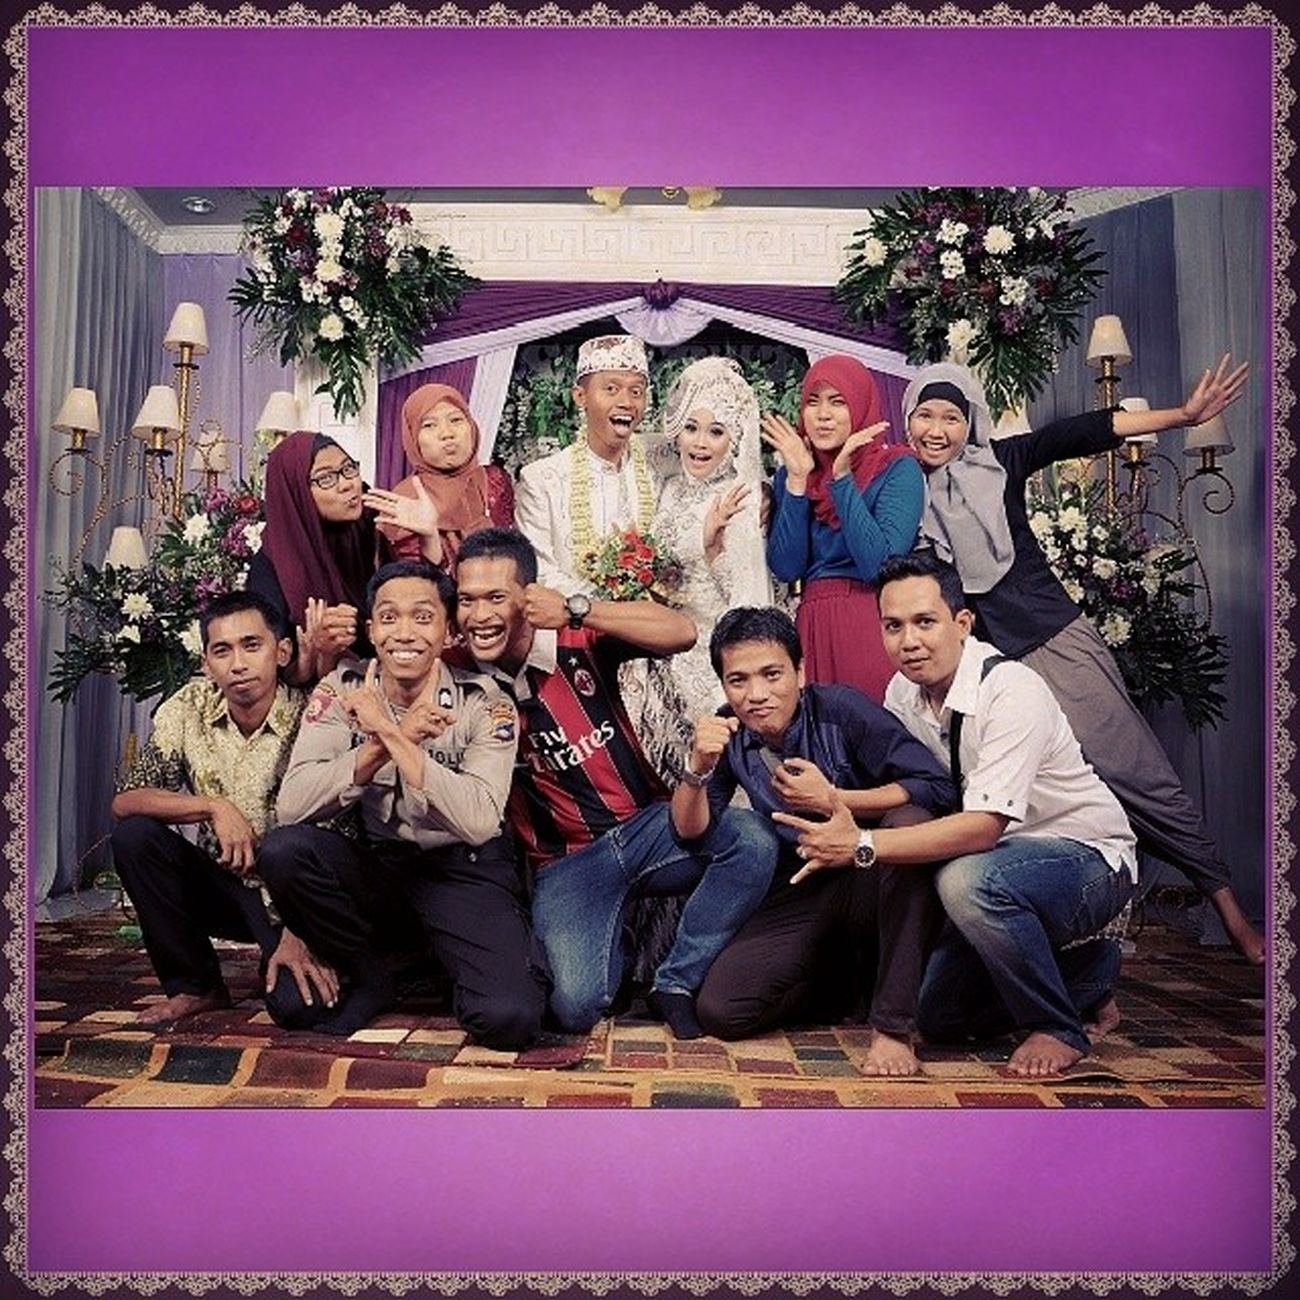 The Wedding Instalike Instawedding Instabanjar Instabungas bridal with friends